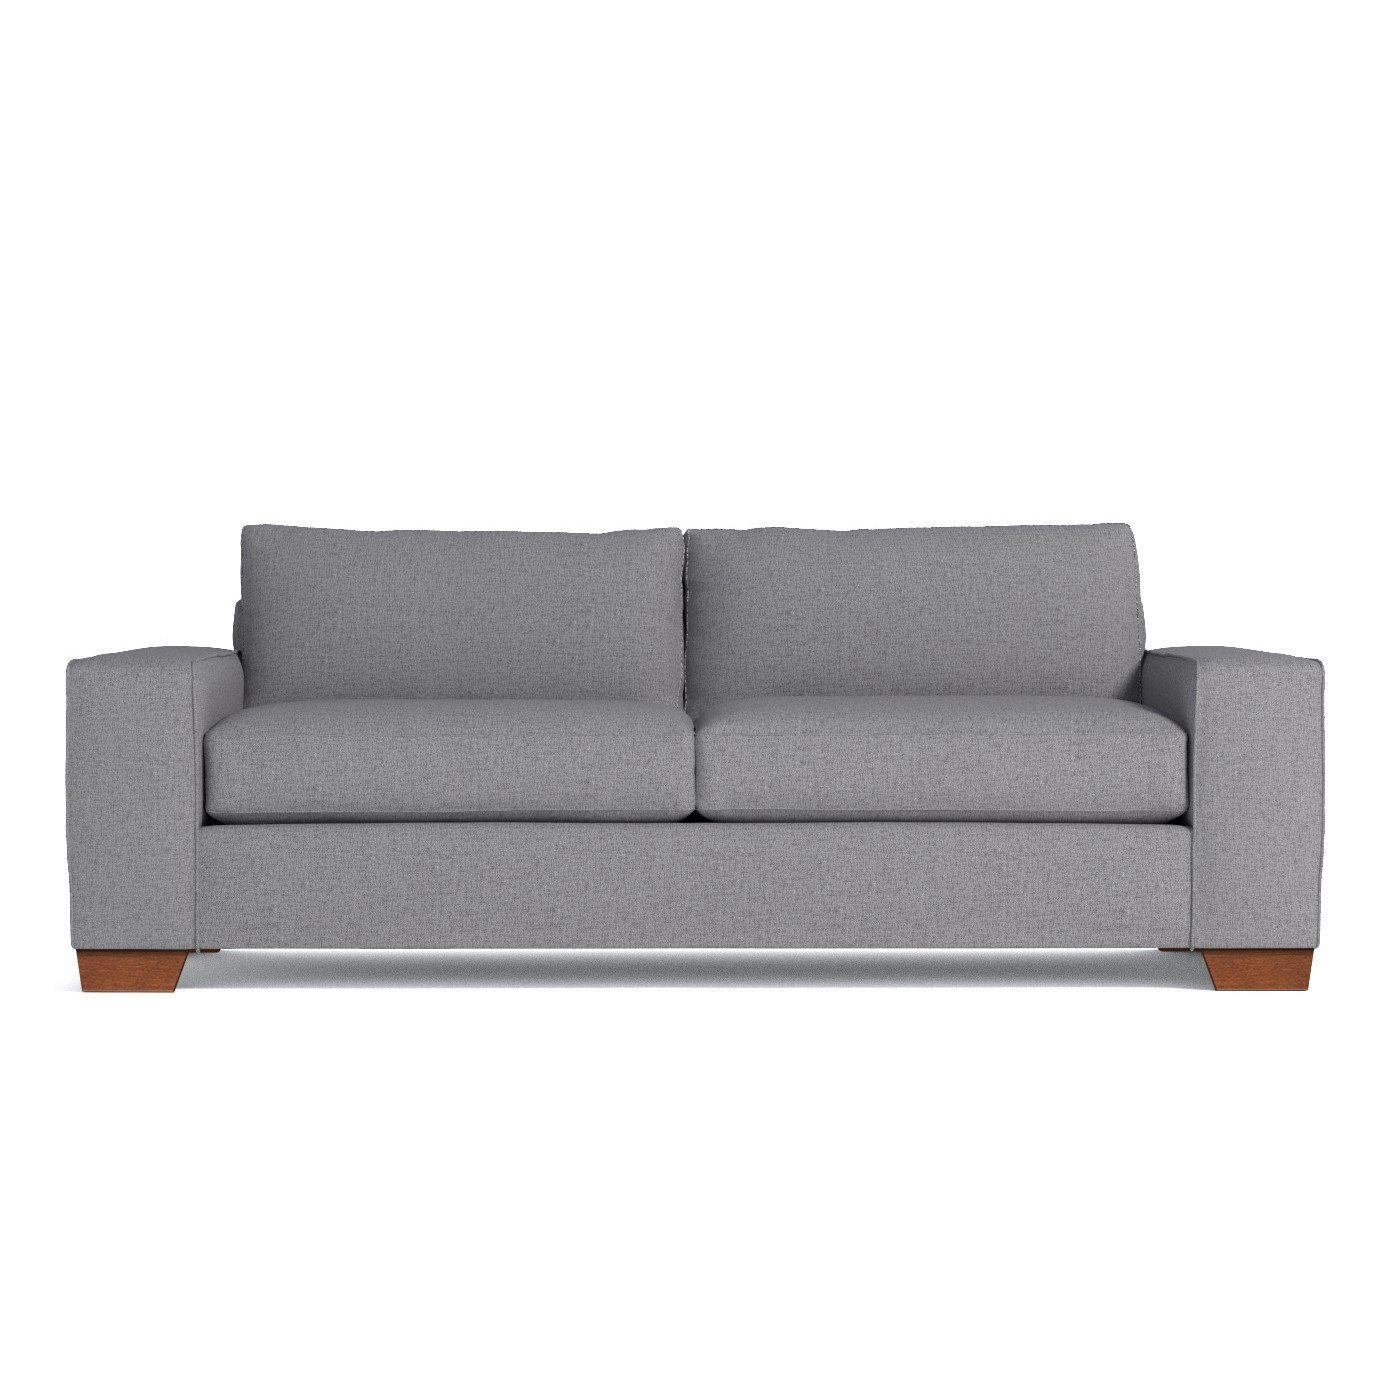 Camerich Sofa Review Best Modern Sectional Apartment Therapy Boxy Thesofa